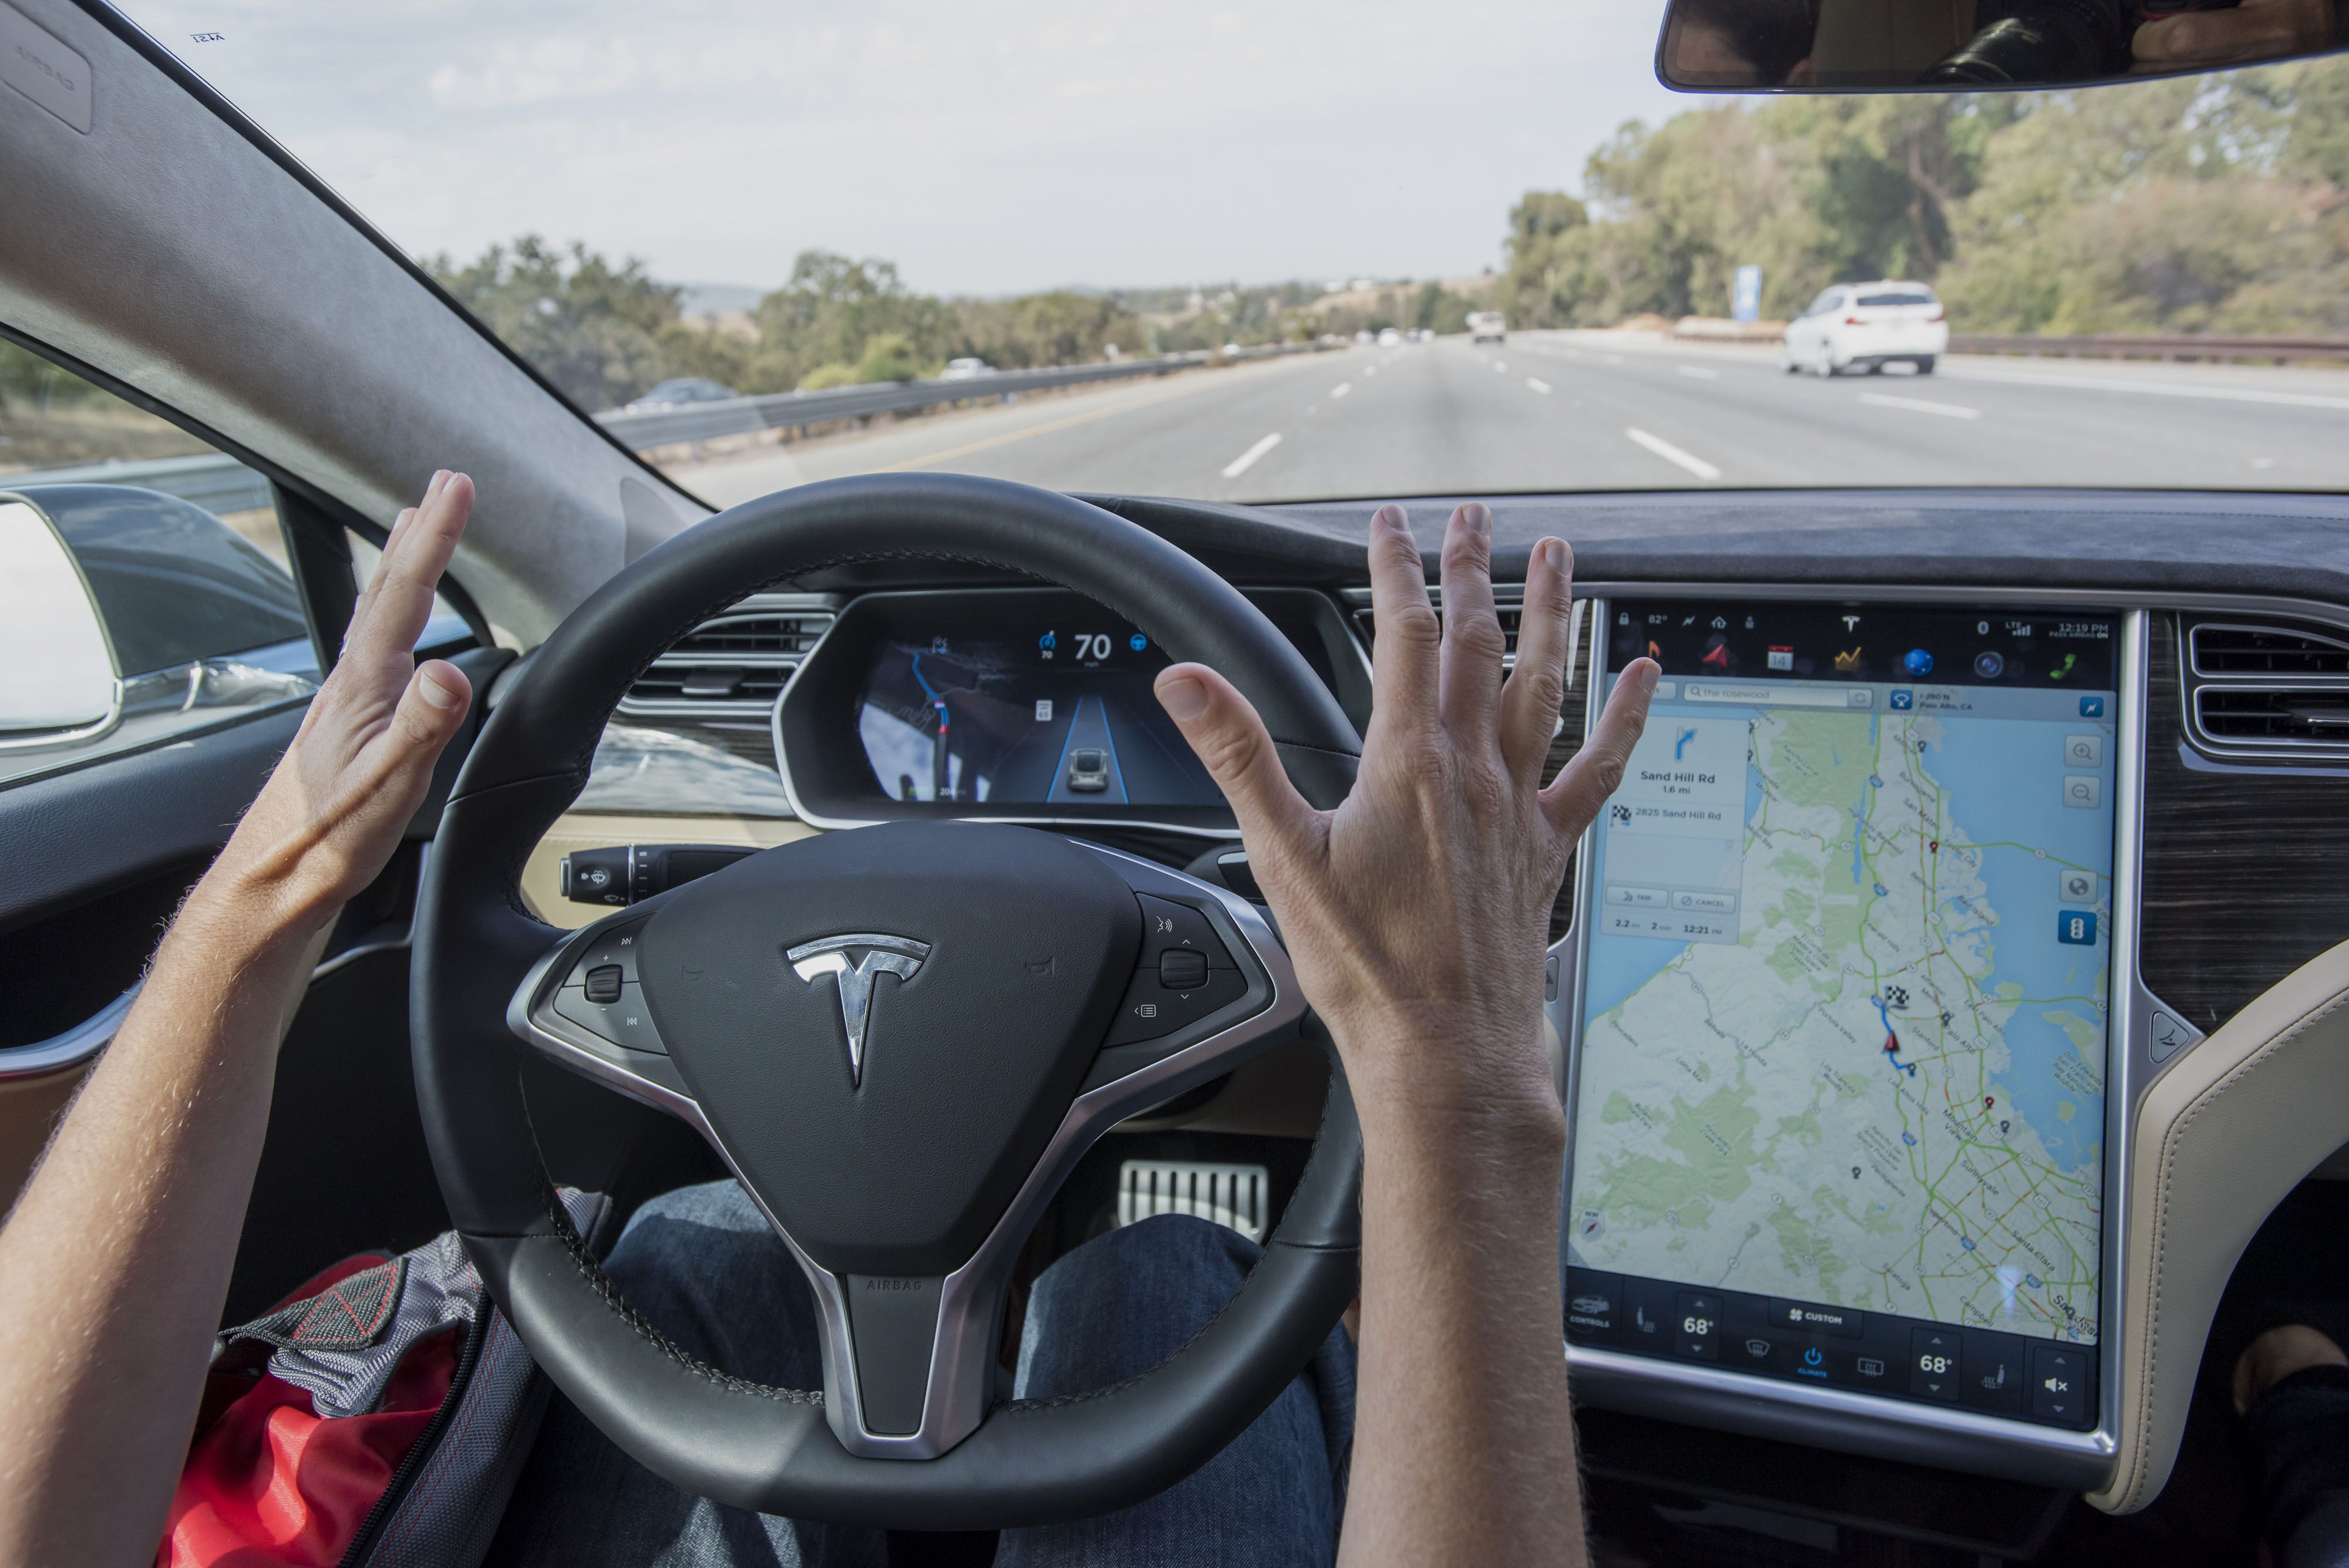 NHTSA Finds Tesla Not at Fault in 2016 Autopilot Crash